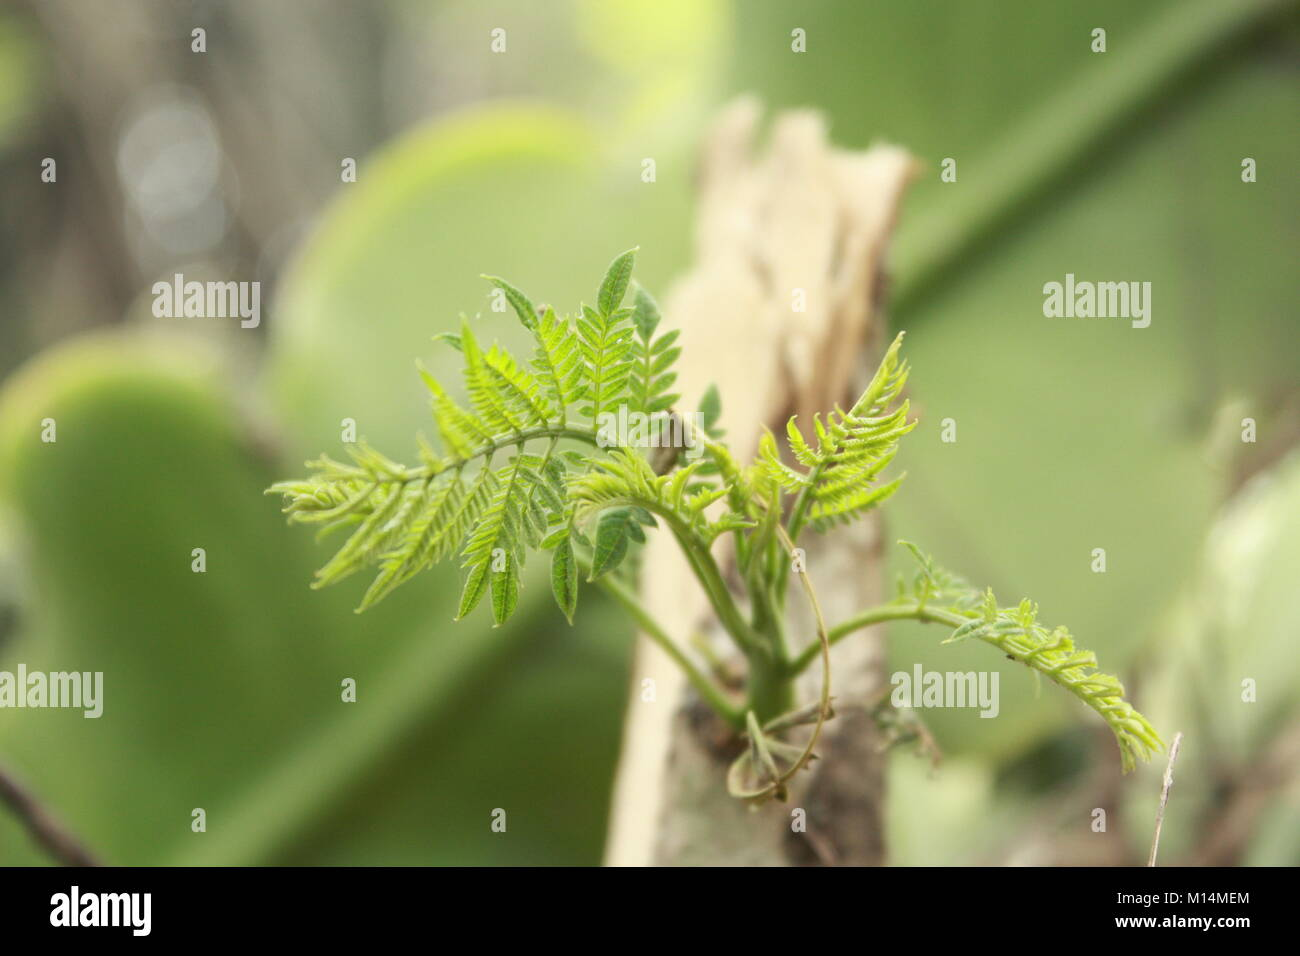 Beautiful pictures of Flowers and greenery taken around where I live. Nature is full of beauty! I love taking these Stock Photo